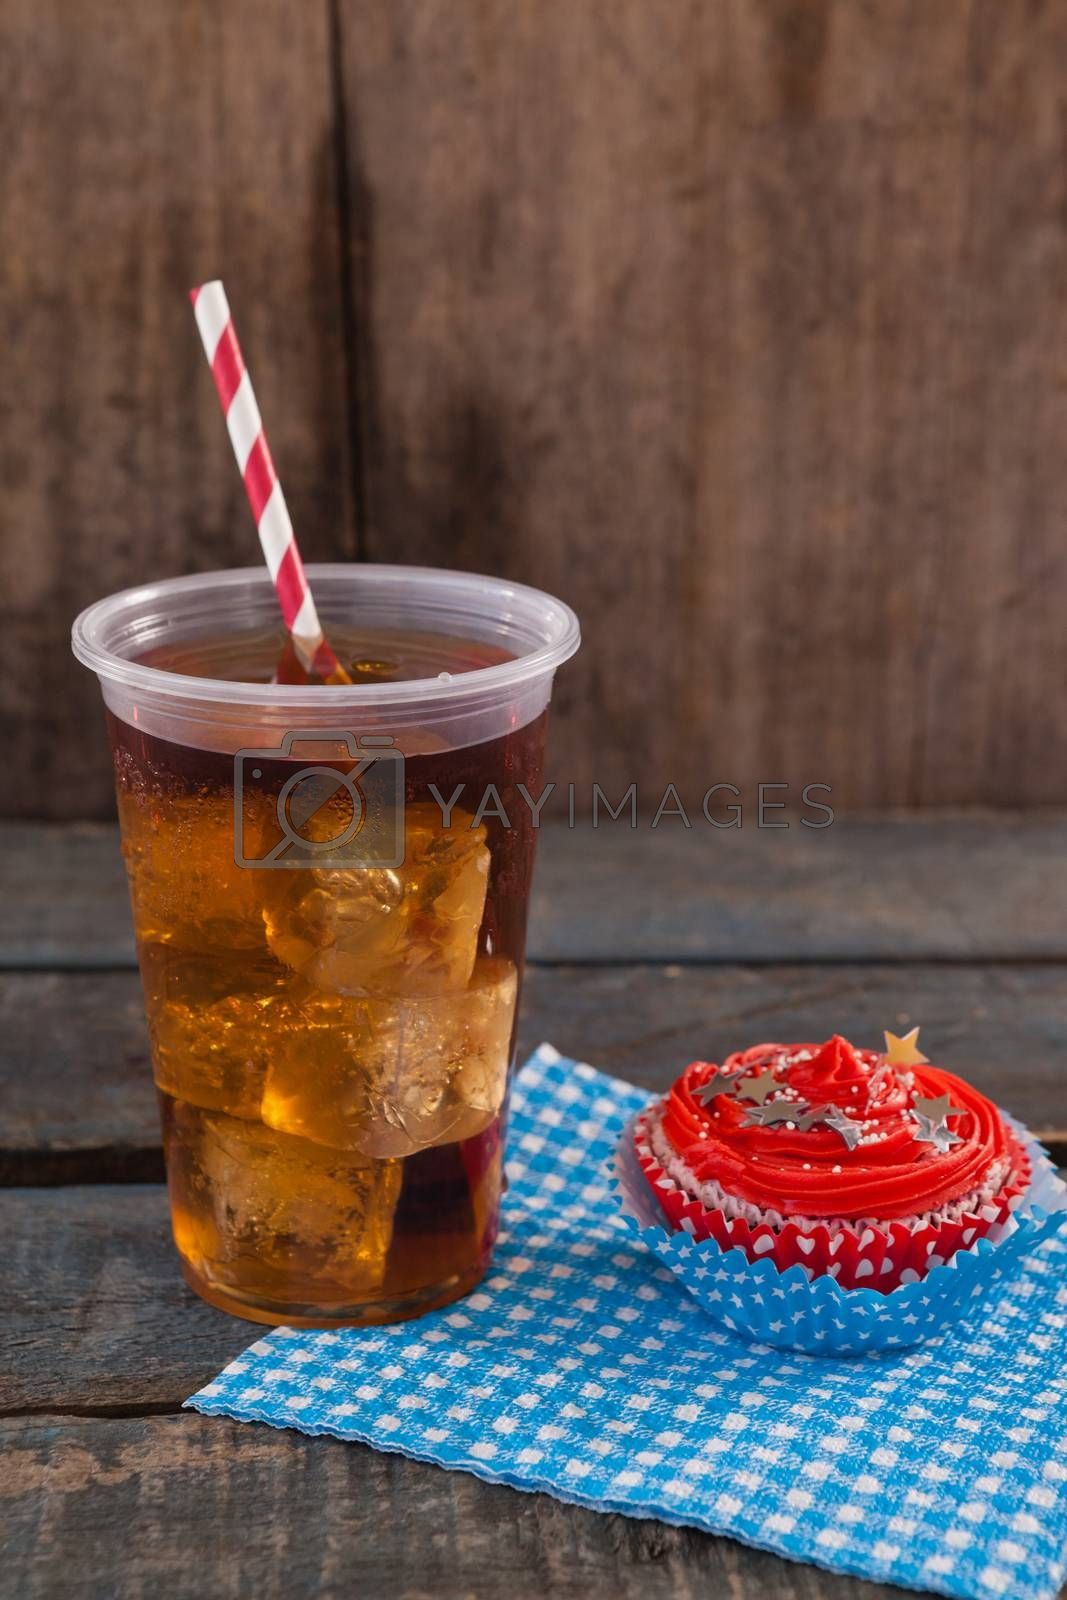 Royalty free image of Decorated cupcake and cold drink with 4th july theme by Wavebreakmedia